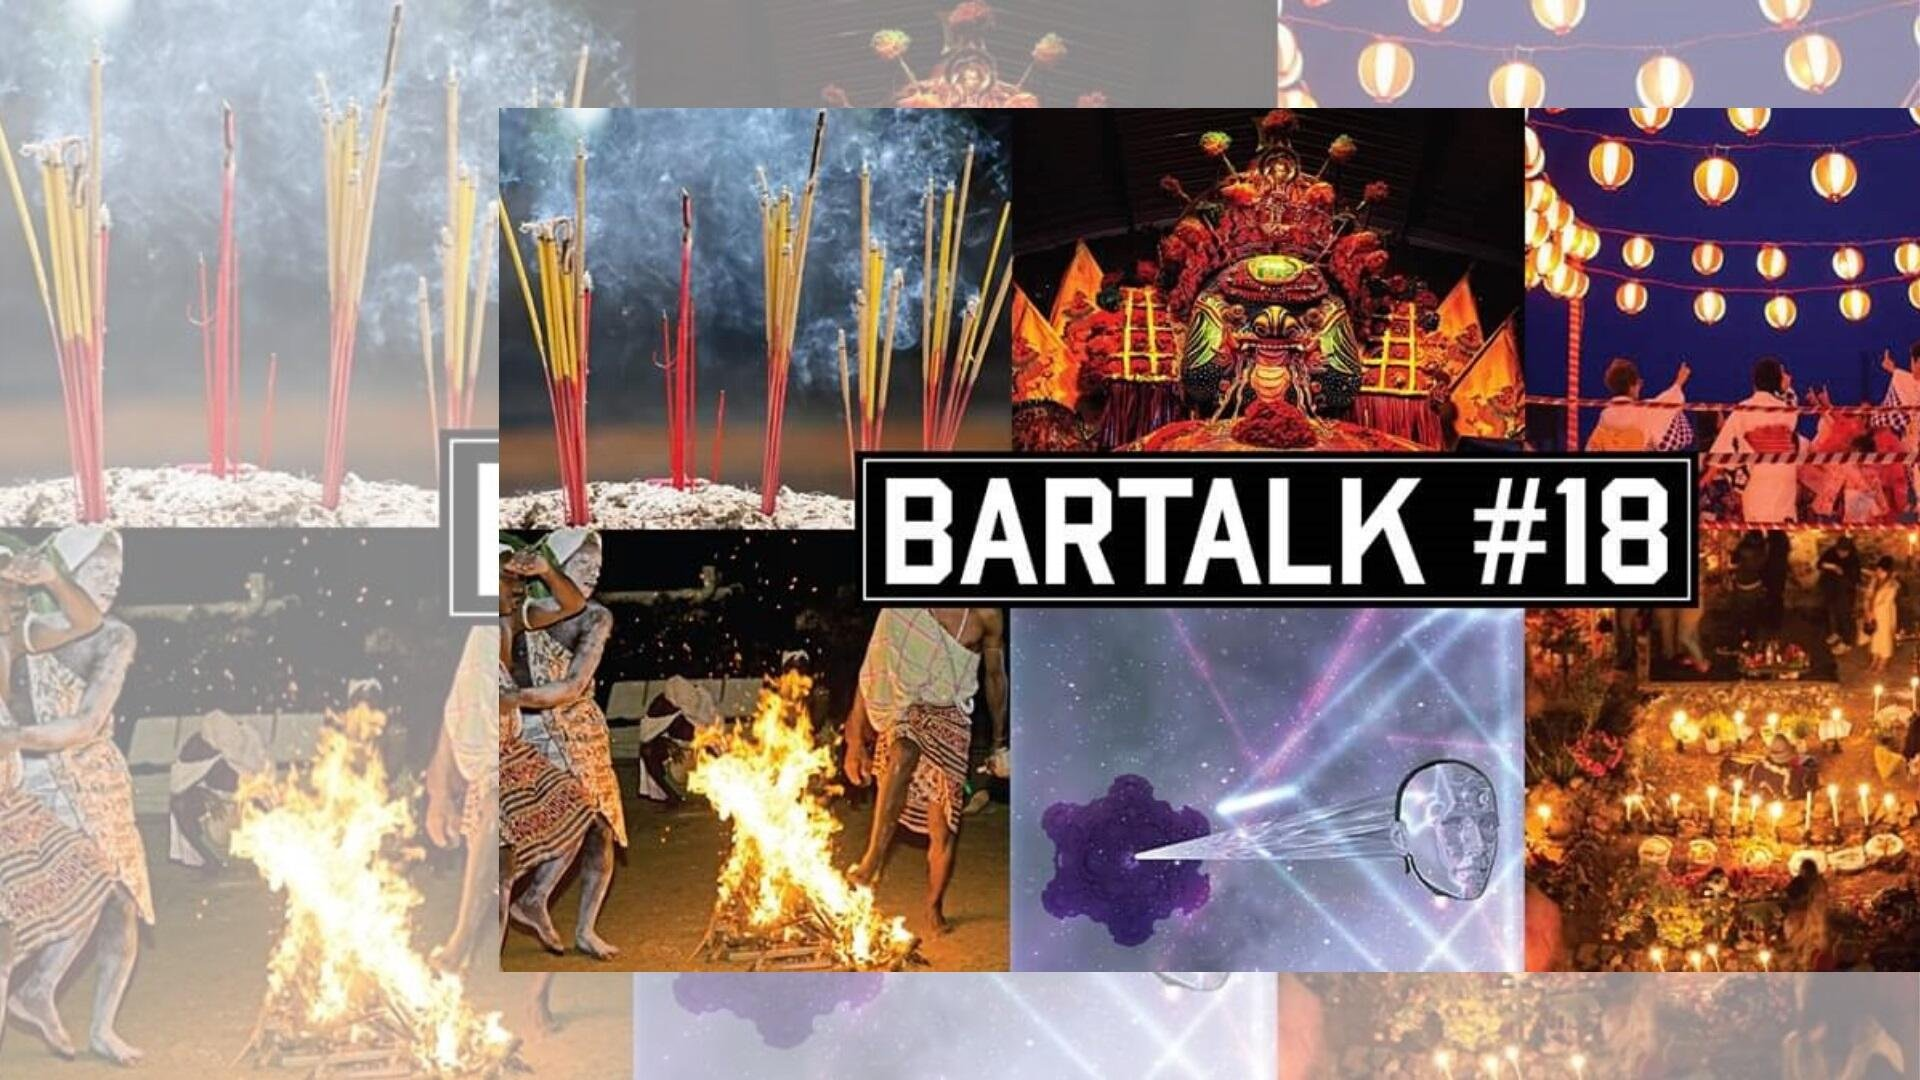 BARTALK #18: Death and The Afterlife